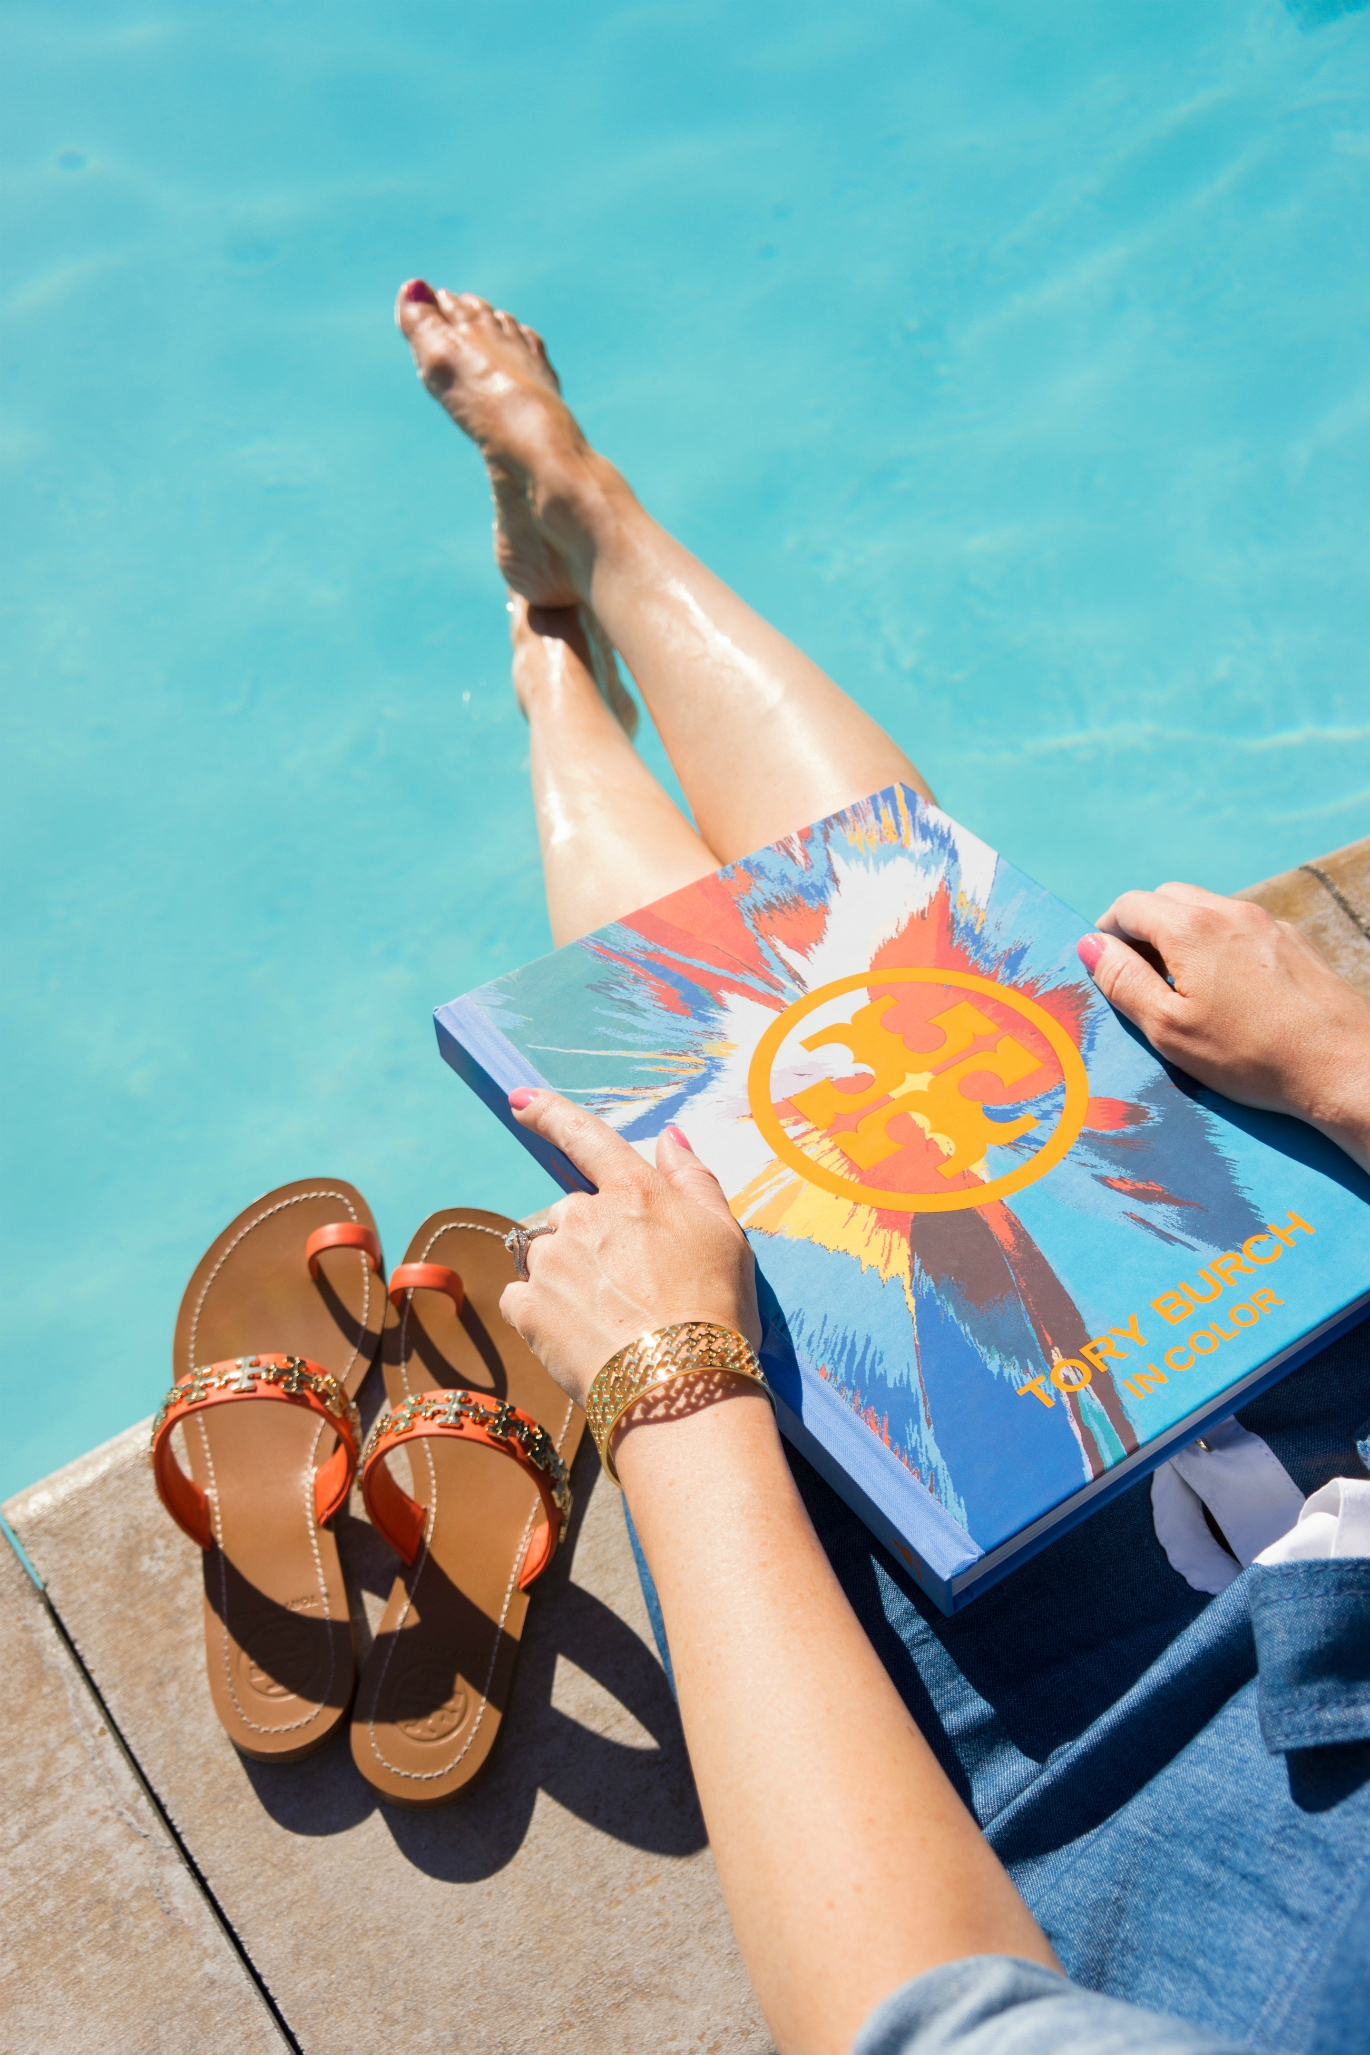 The Sugared Lemon Tory Burch In Color poolside and orange toe ring logo sandals and bracelet